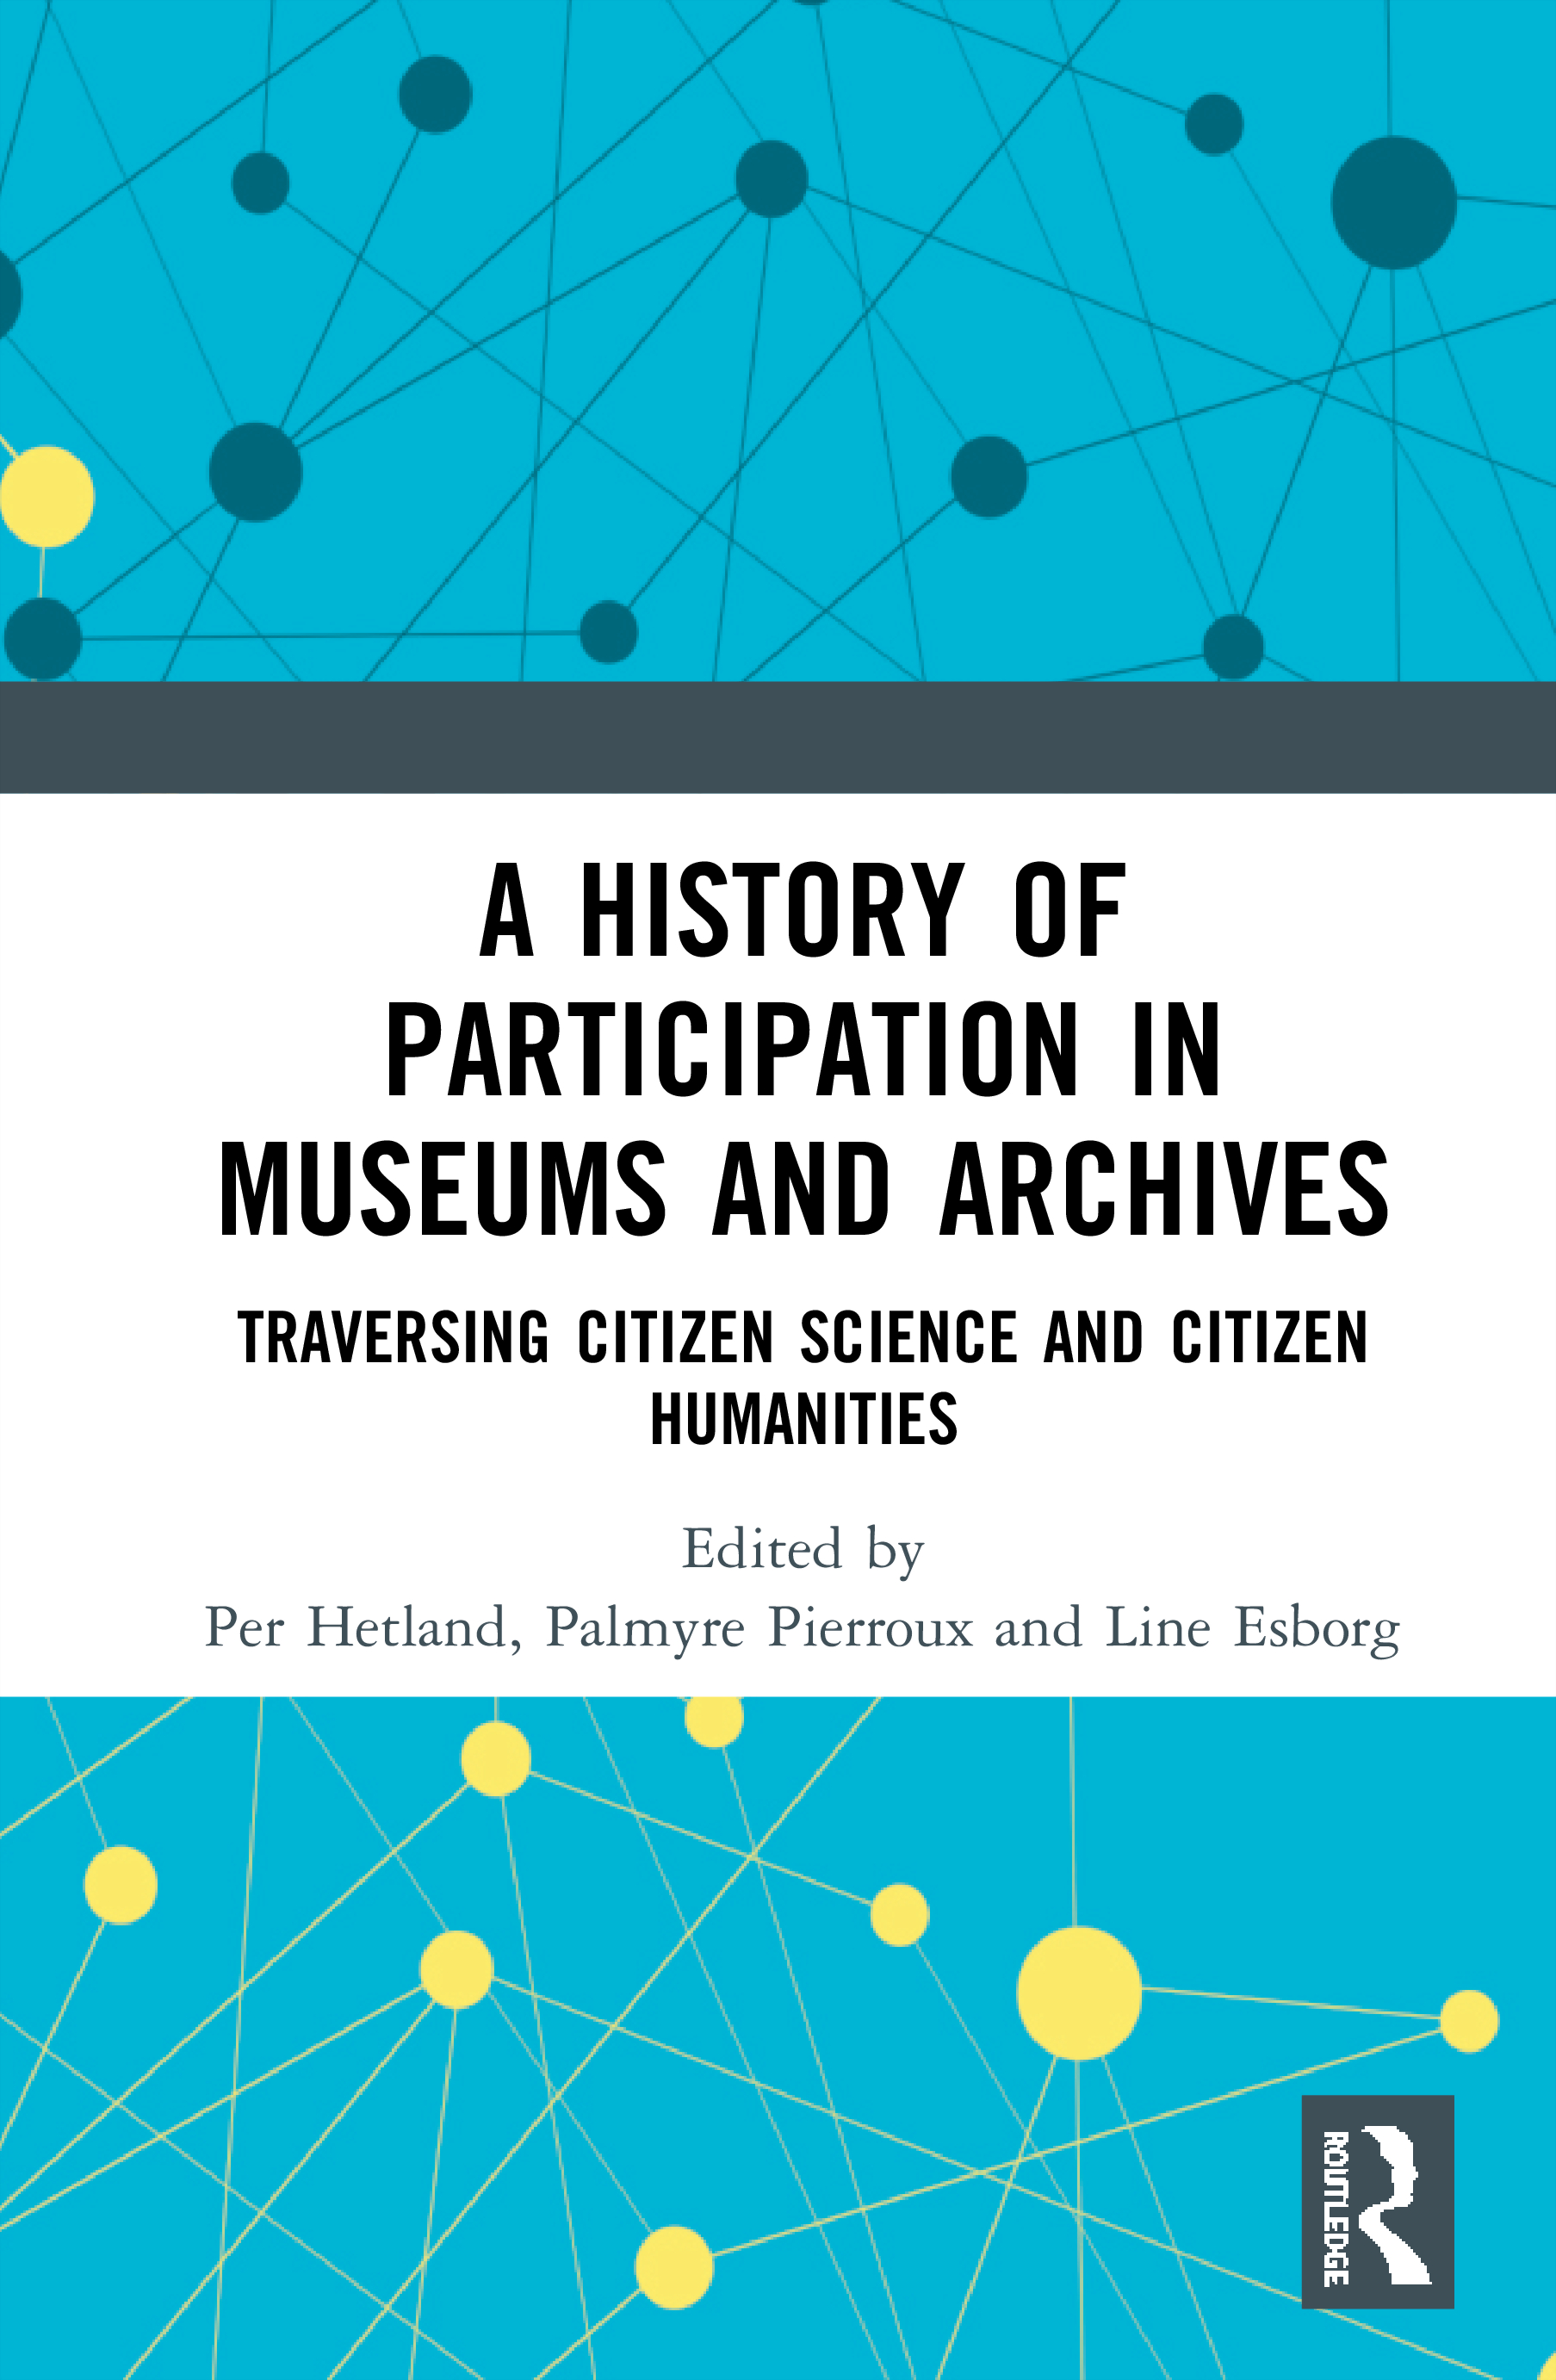 A History of Participation in Museums and Archives: Traversing Citizen Science and Citizen Humanities book cover